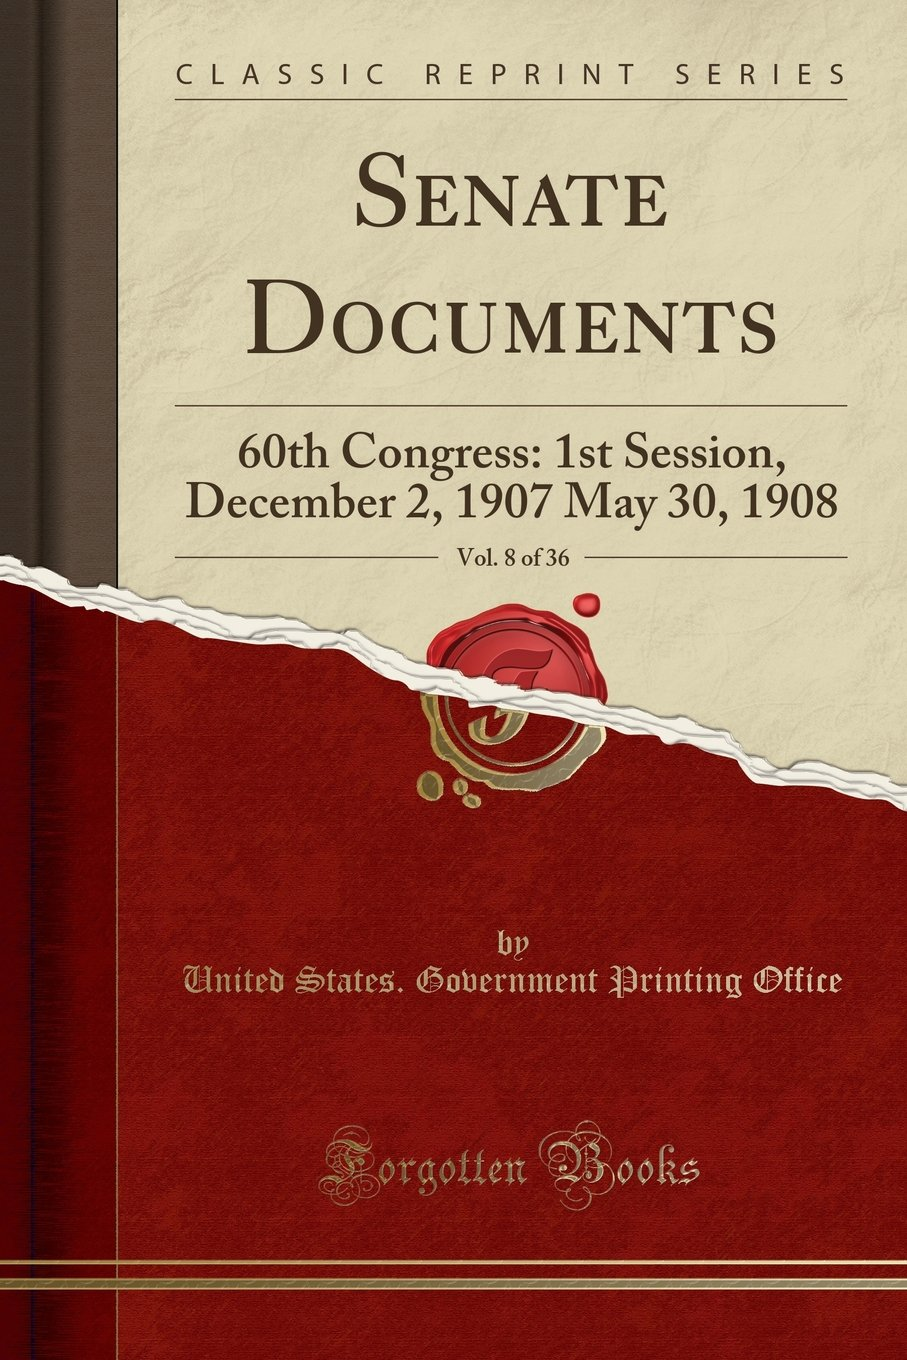 Senate Documents, Vol. 8 of 36: 60th Congress: 1st Session, December 2, 1907 May 30, 1908 (Classic Reprint) pdf